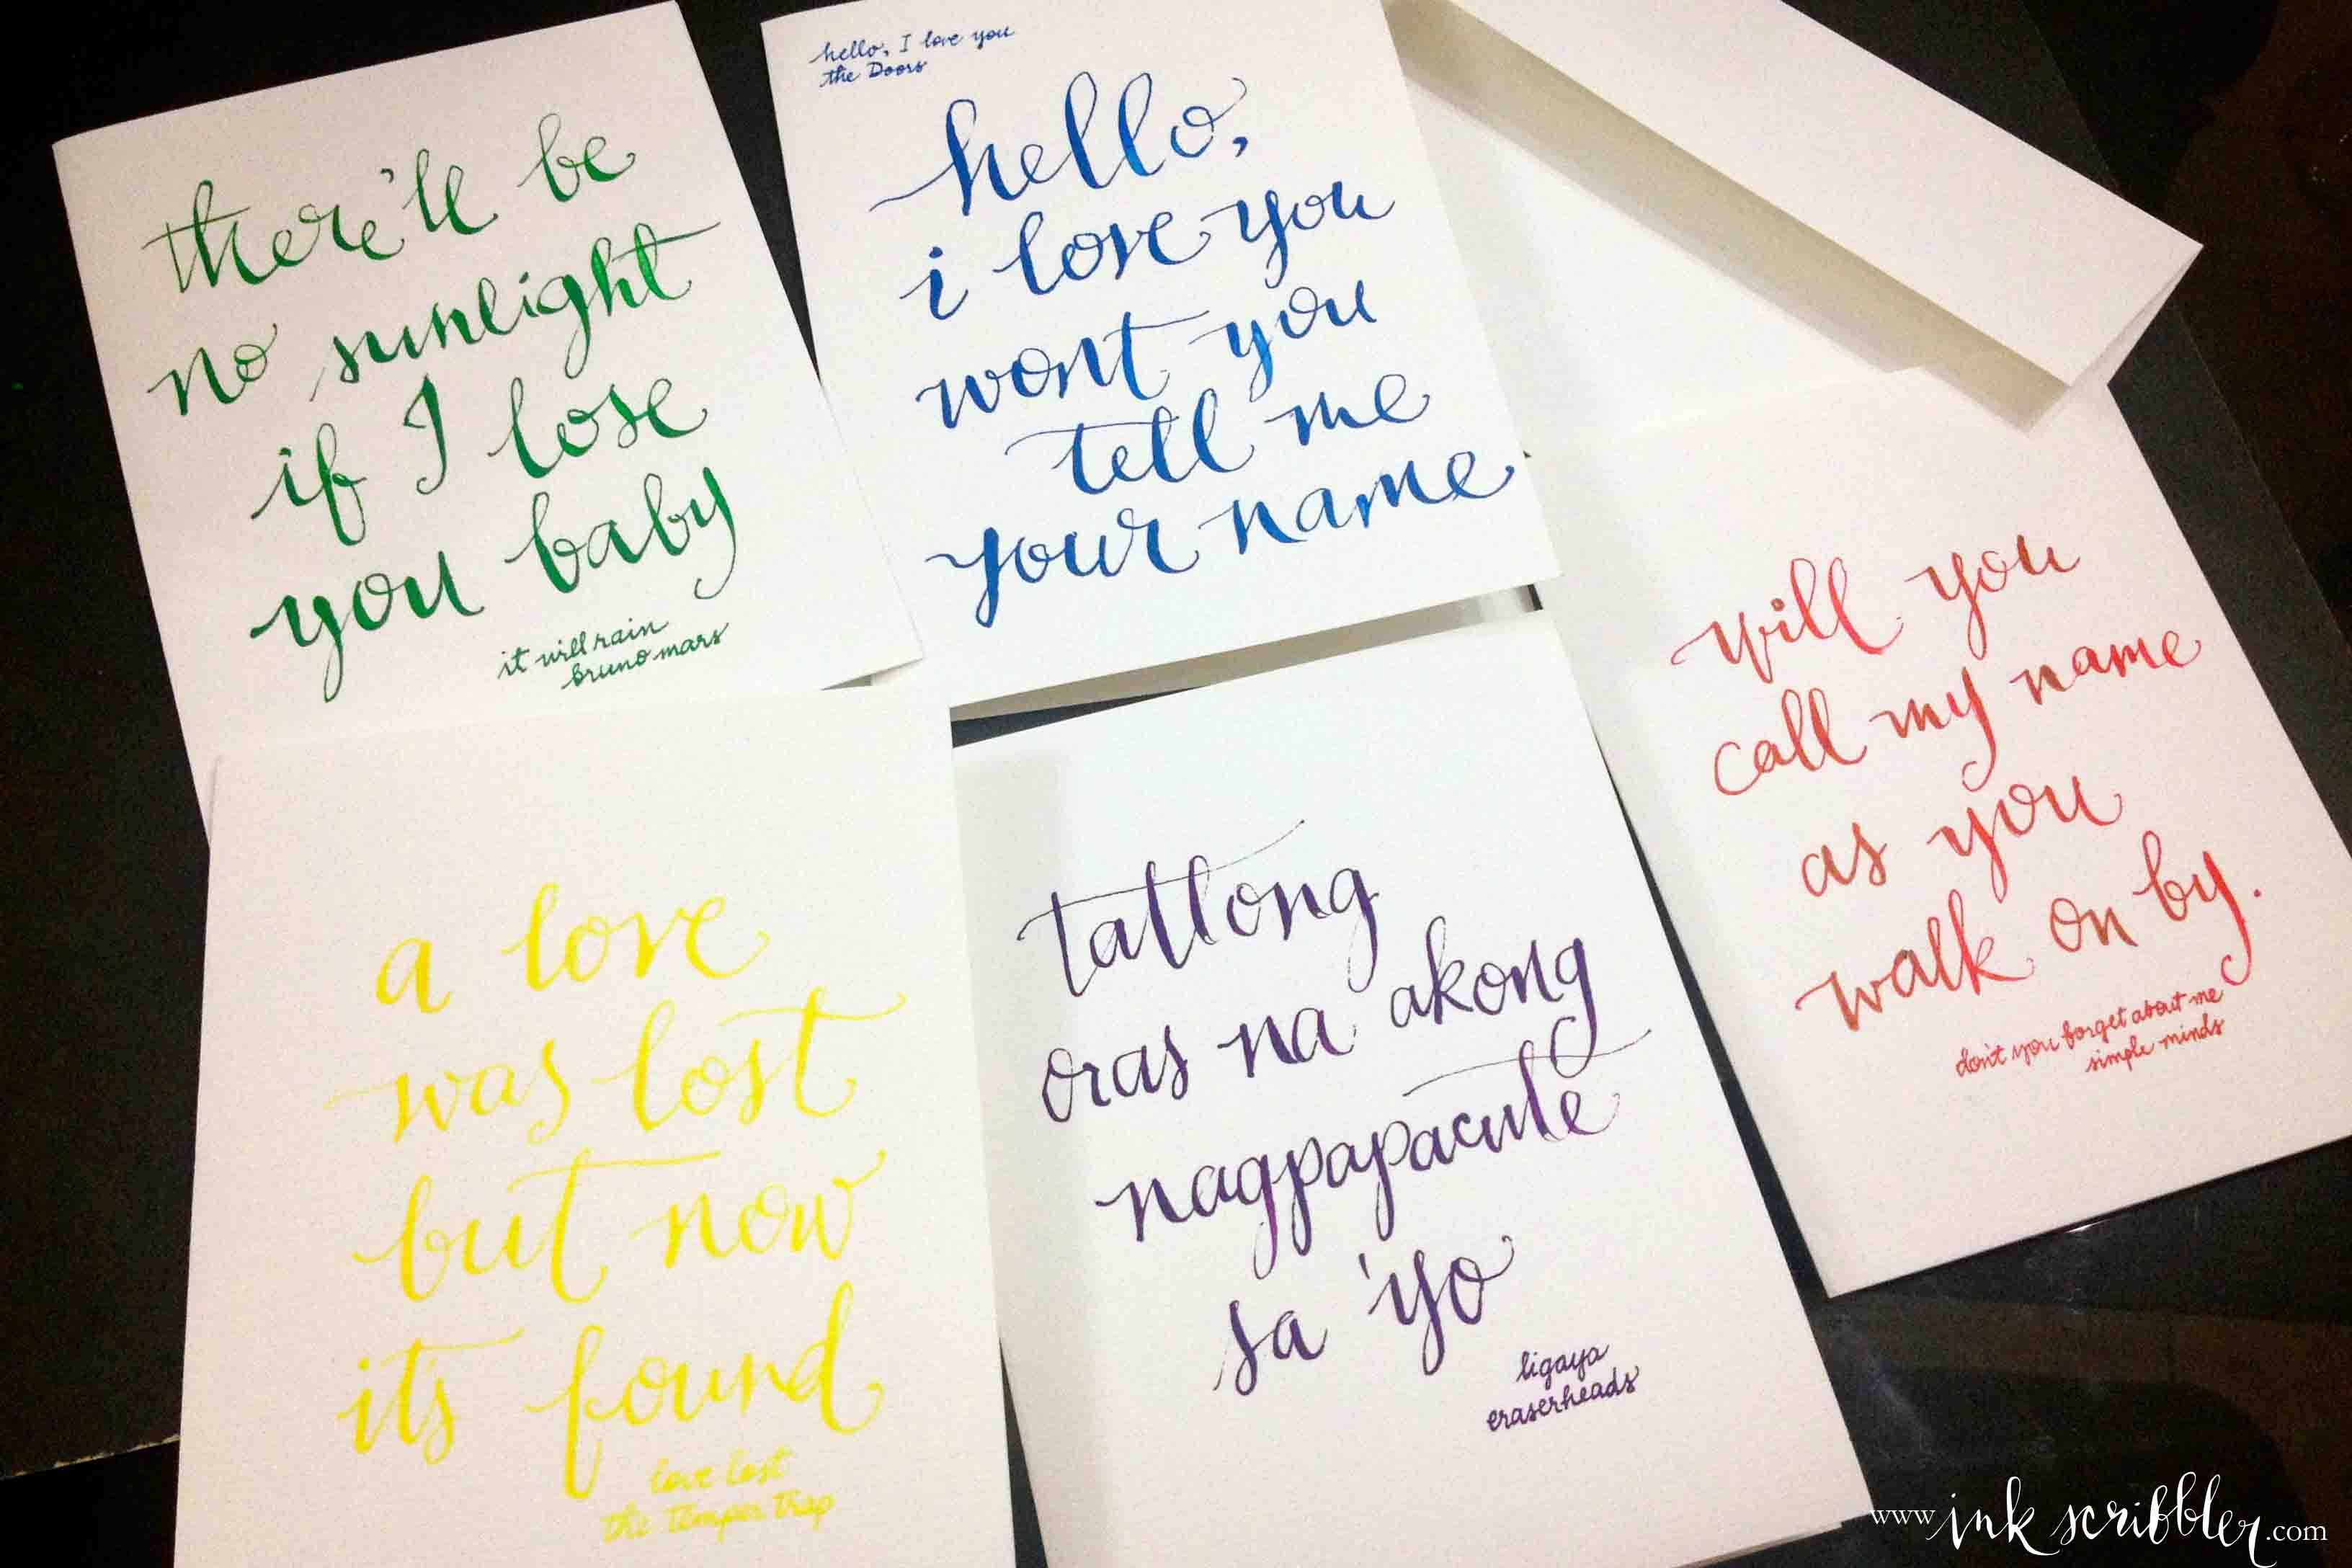 valentines cards inspired by songs wwwinkscribblercom calligraphy by alexis pinterest - What To Write On Valentines Card